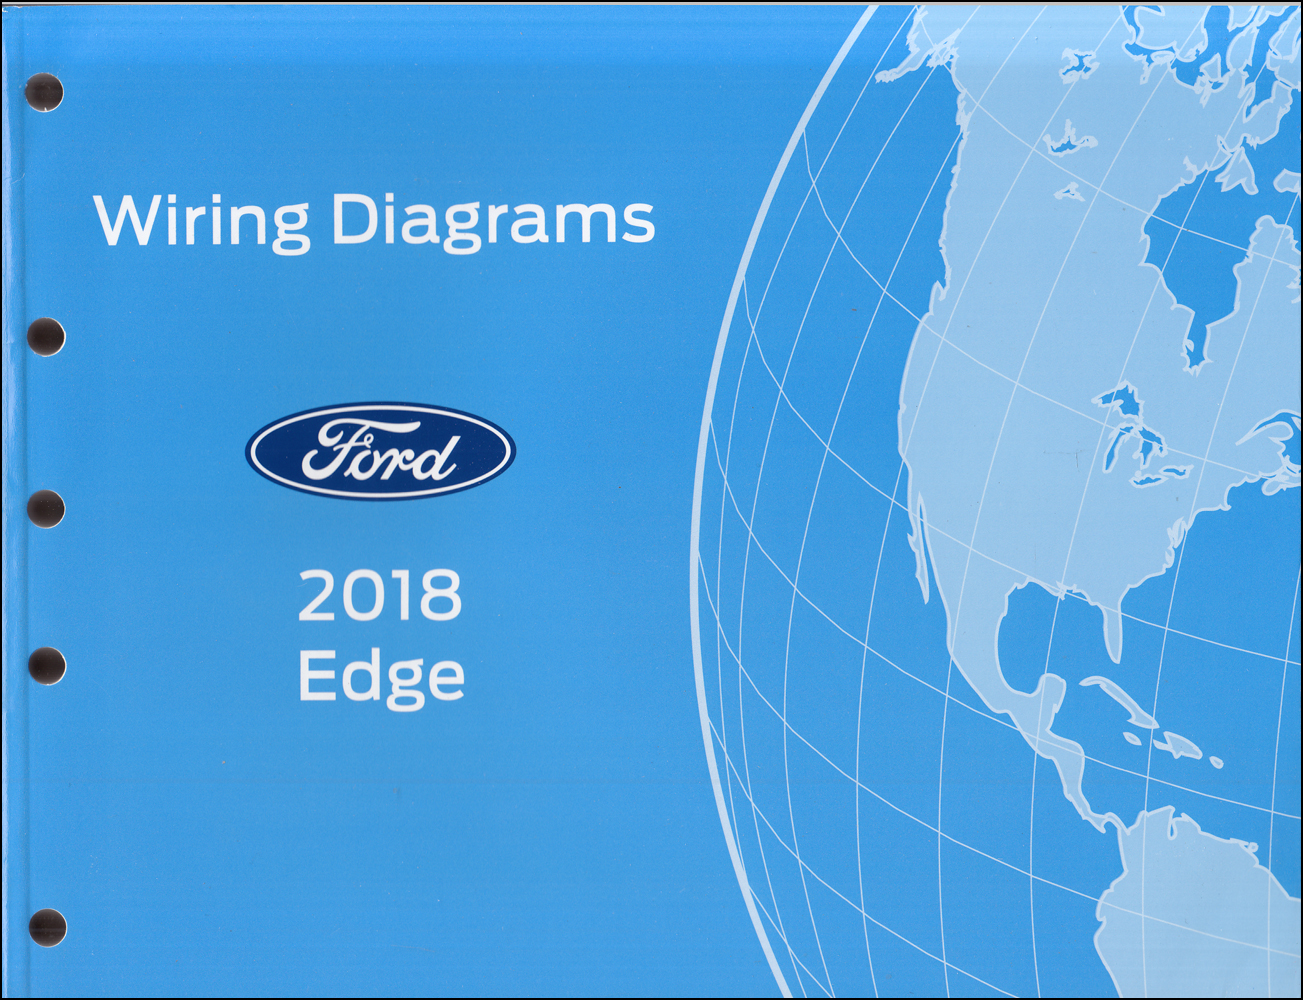 Ford Edge Wiring Diagram from www.faxonautoliterature.com